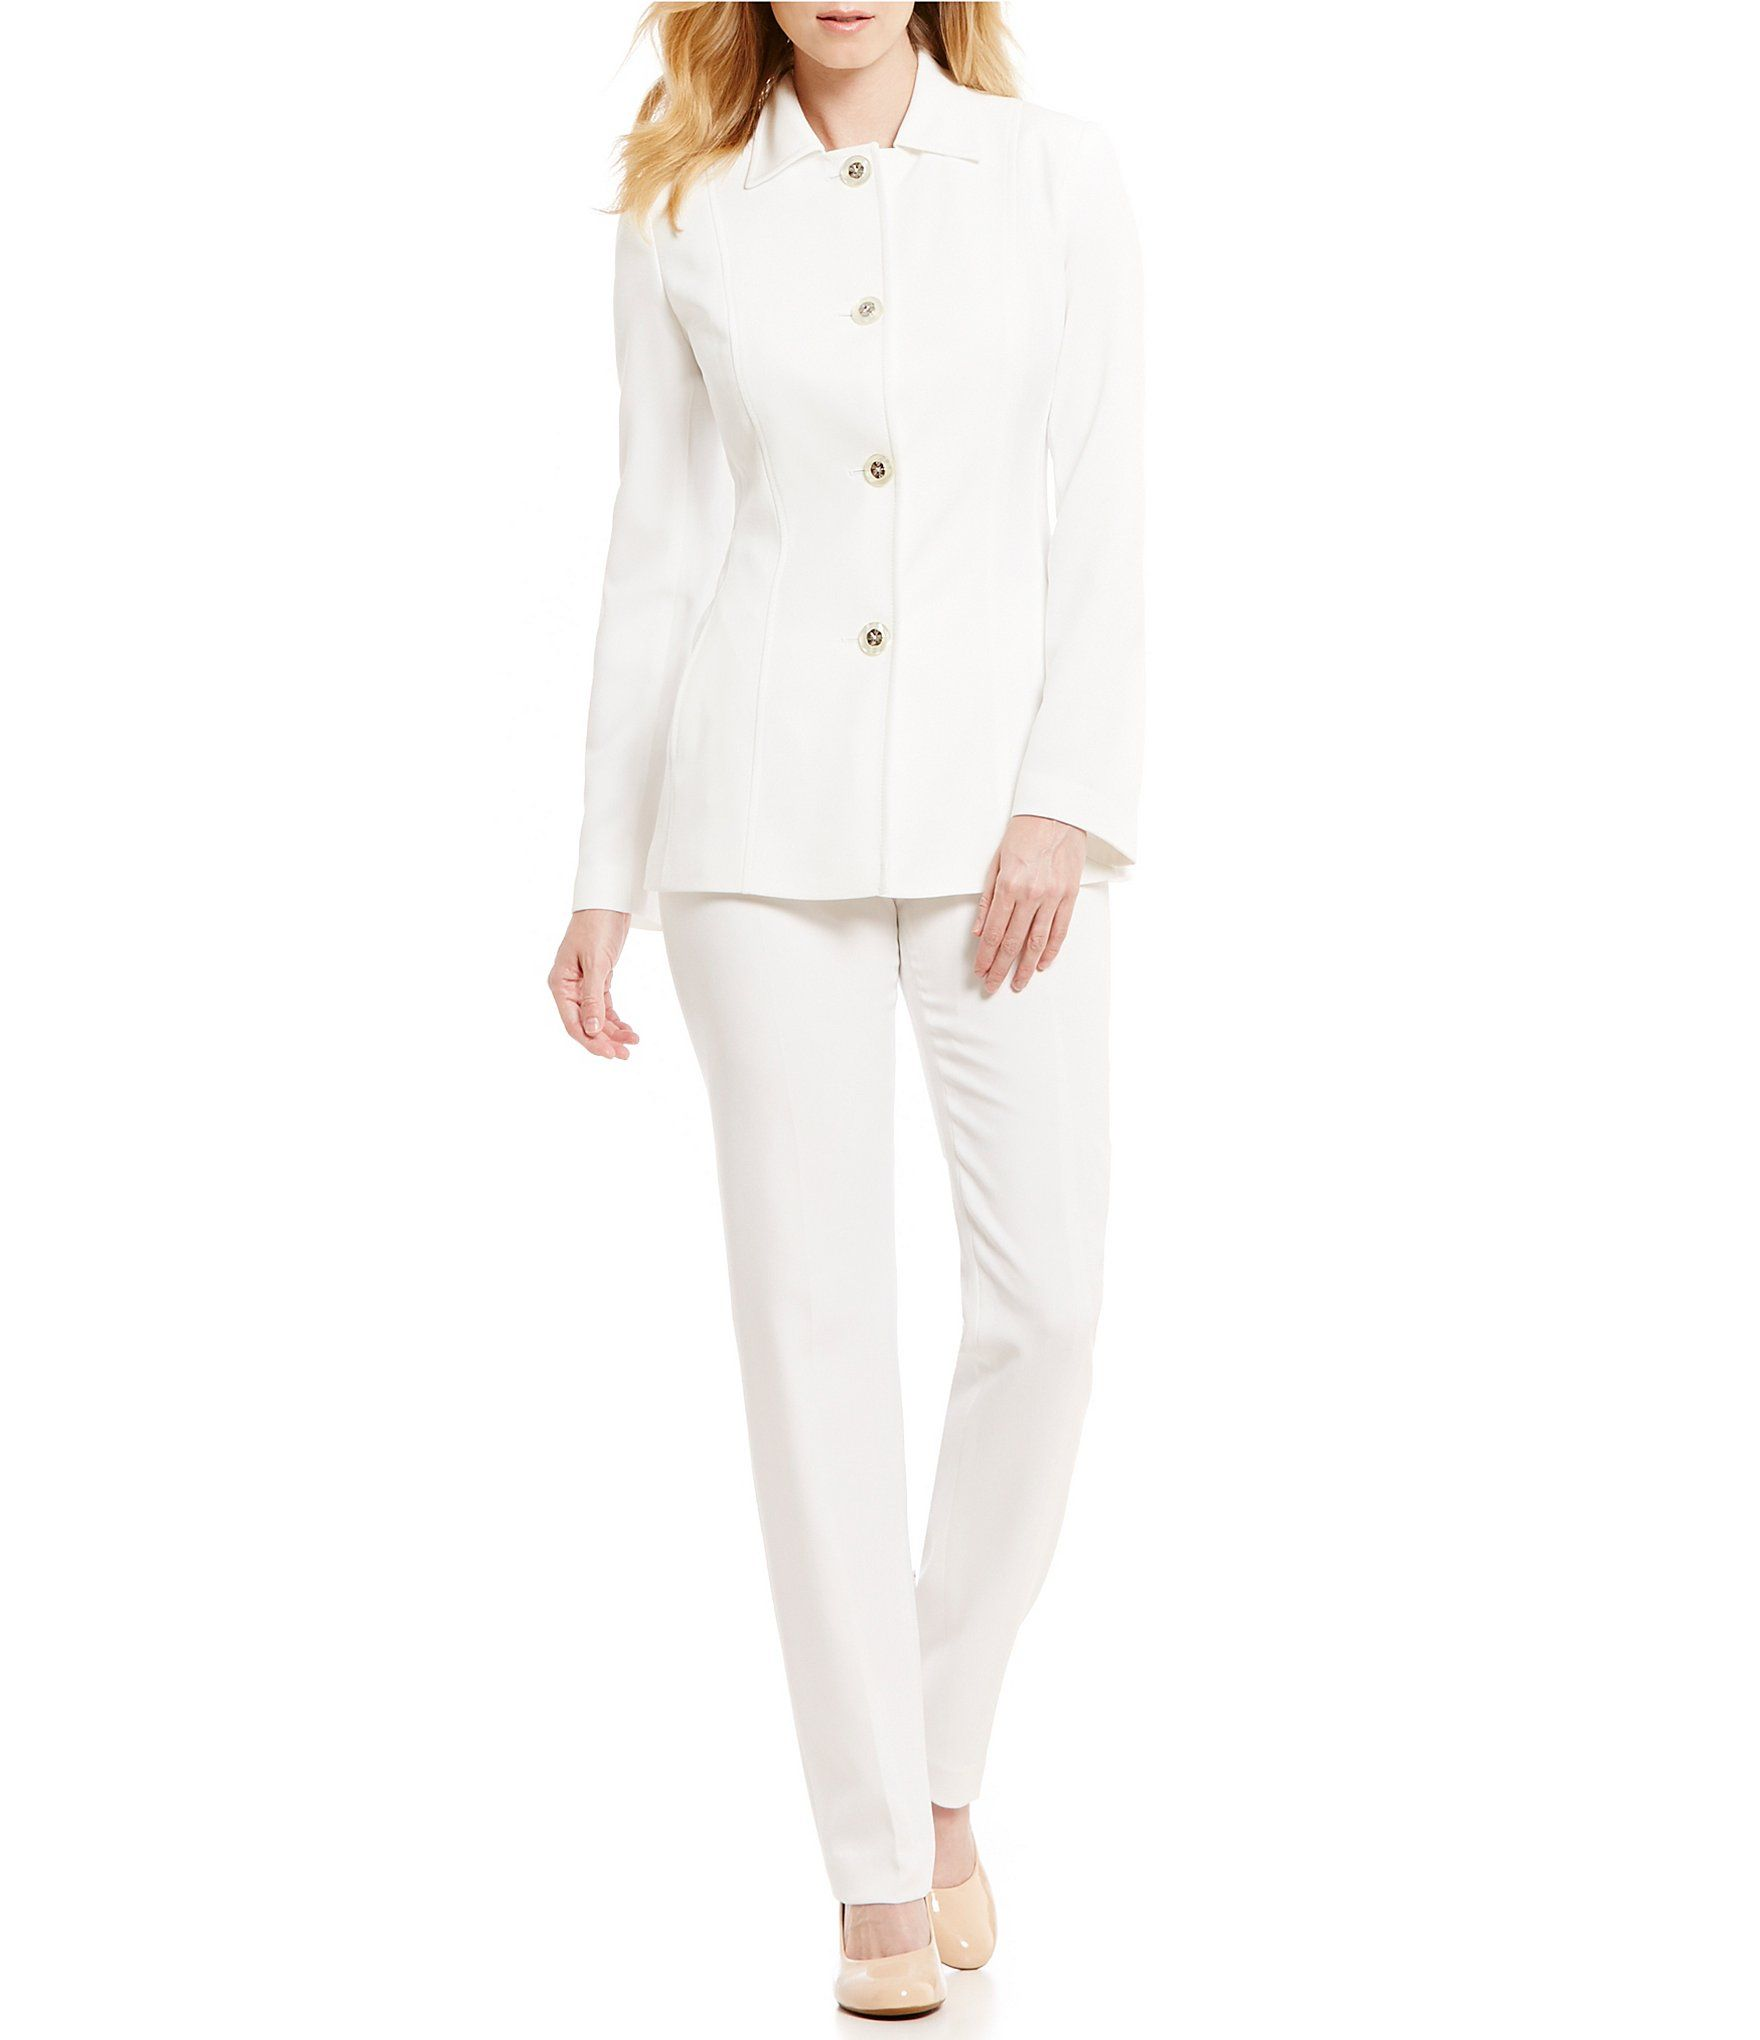 Fleur delacour wedding dress  Shop for John Meyer PointCollar Piece Pant Suit at Dillards